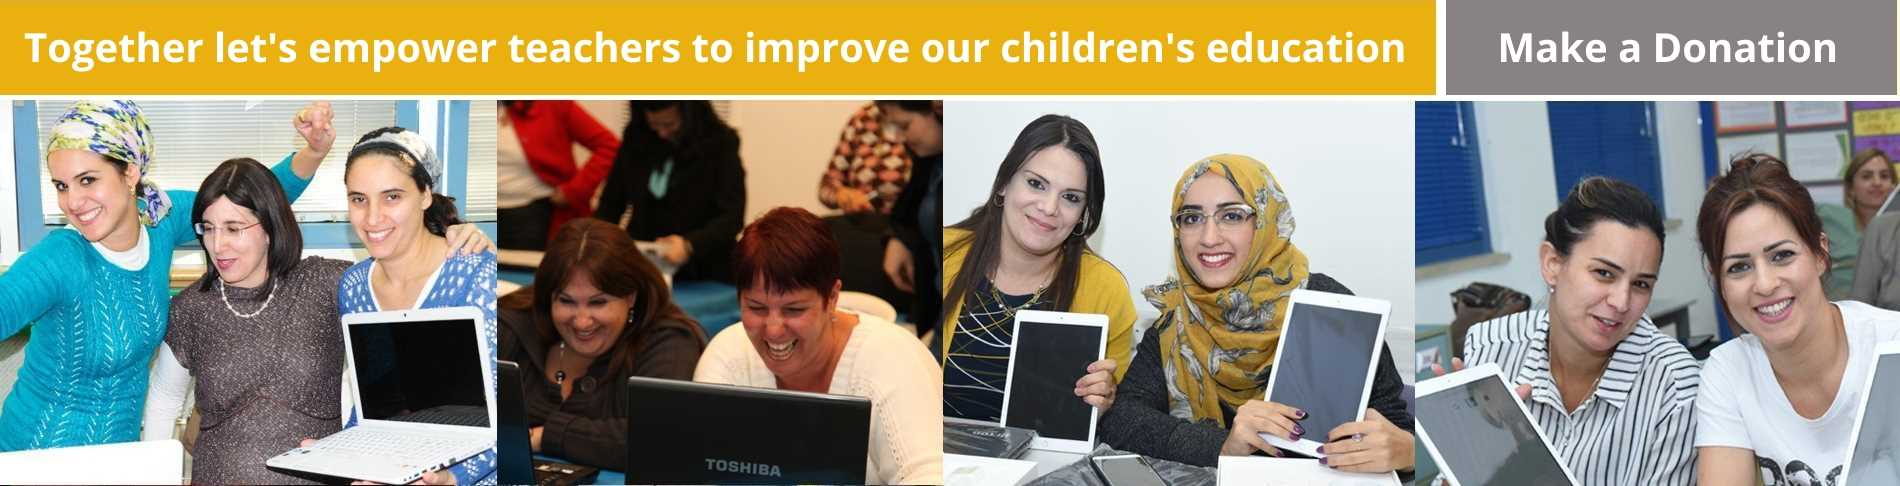 Together lets empower teachers to improve our childrens education,  Make a Donation!